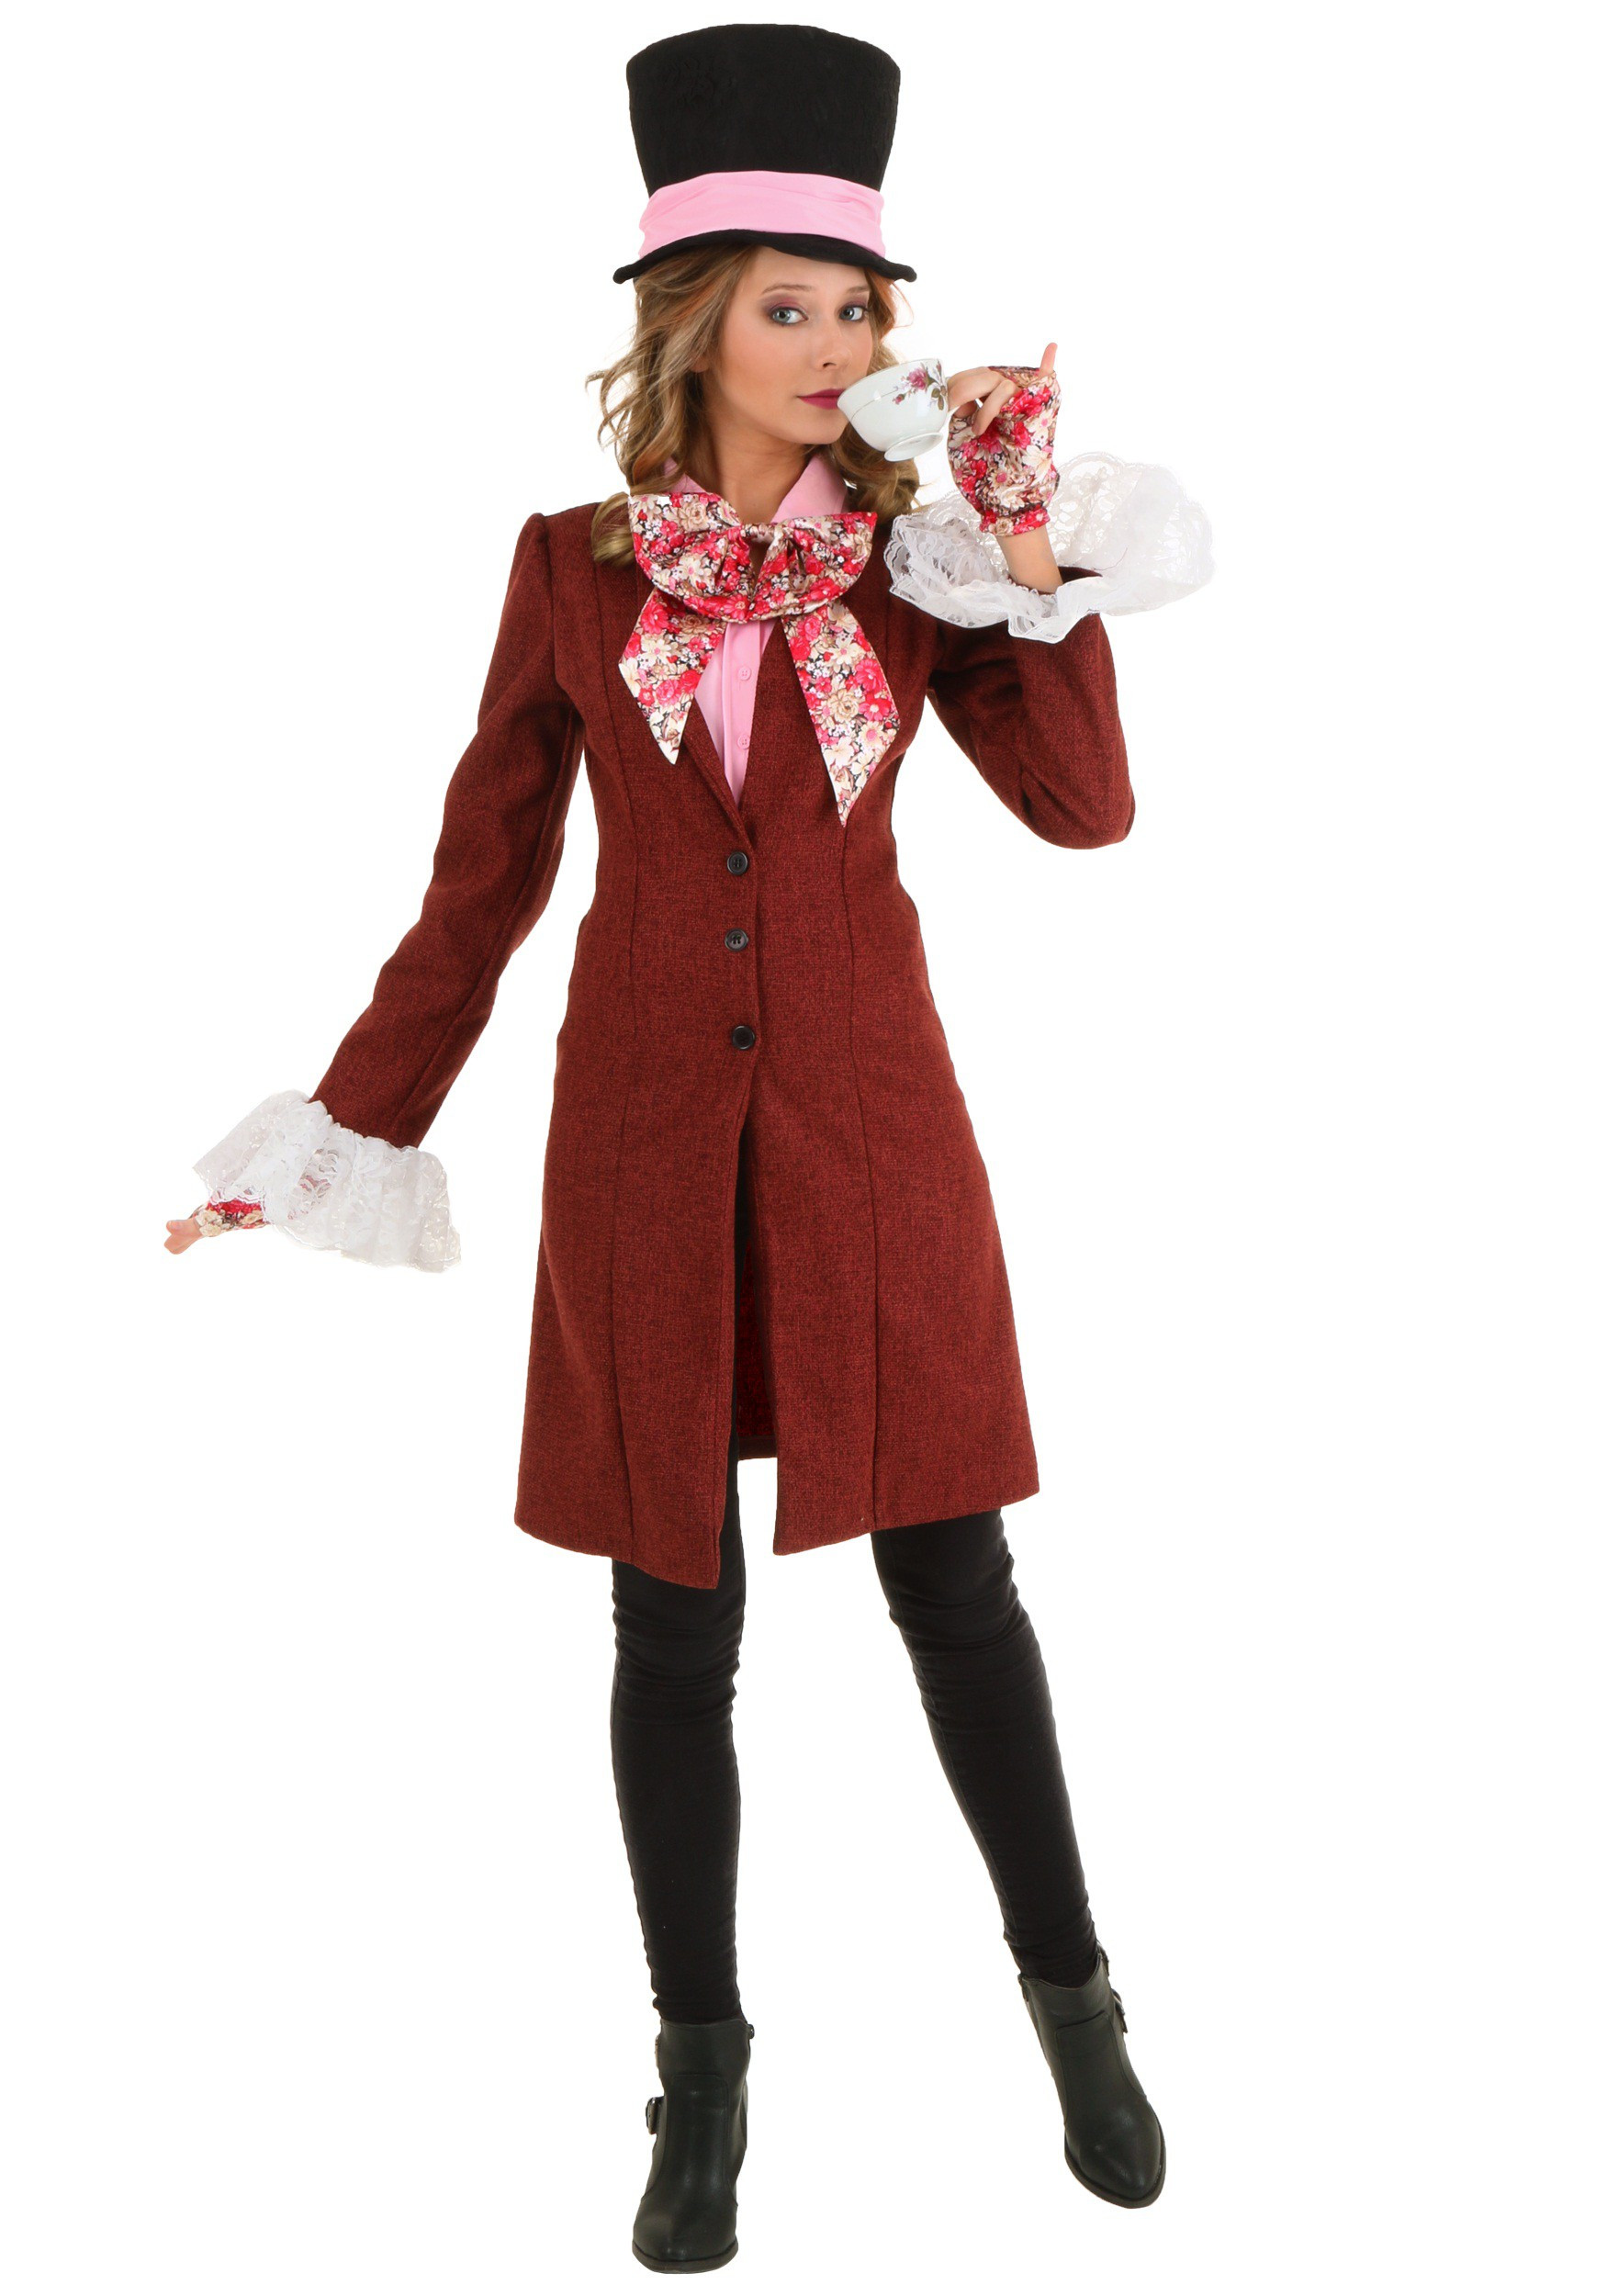 Mad Hatter Tea Party Costume Ideas  Deluxe Plus Size Women s Mad Hatter Costume 1X 2X